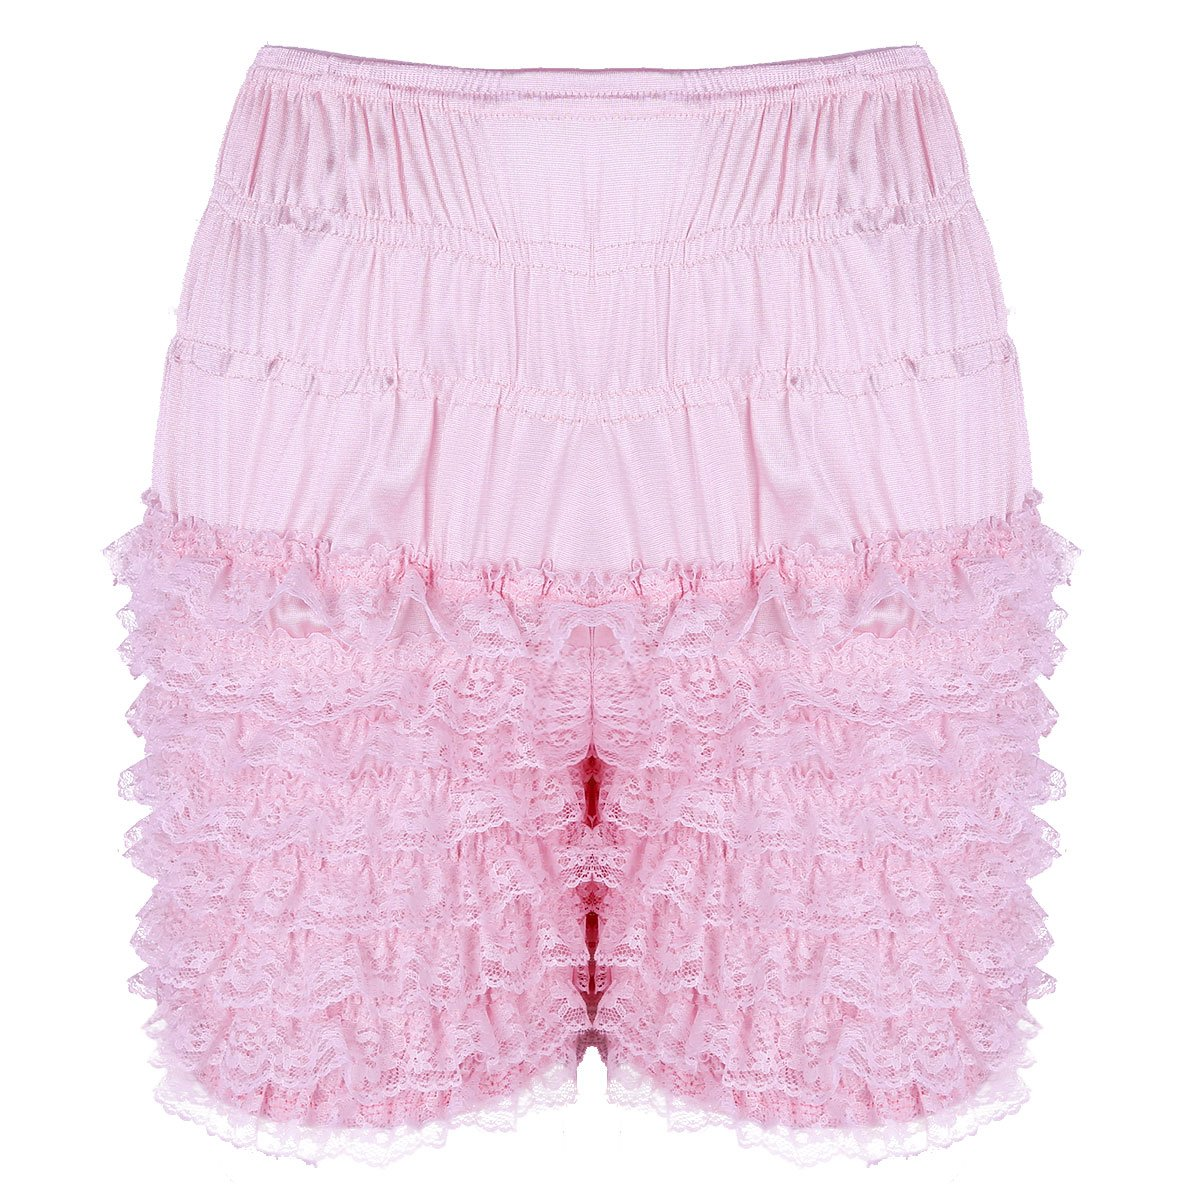 Agoky Women Ladies Knickers Frilly Underwear Boy Shorts Hot Pants Fancy Dress Dance Show Costume